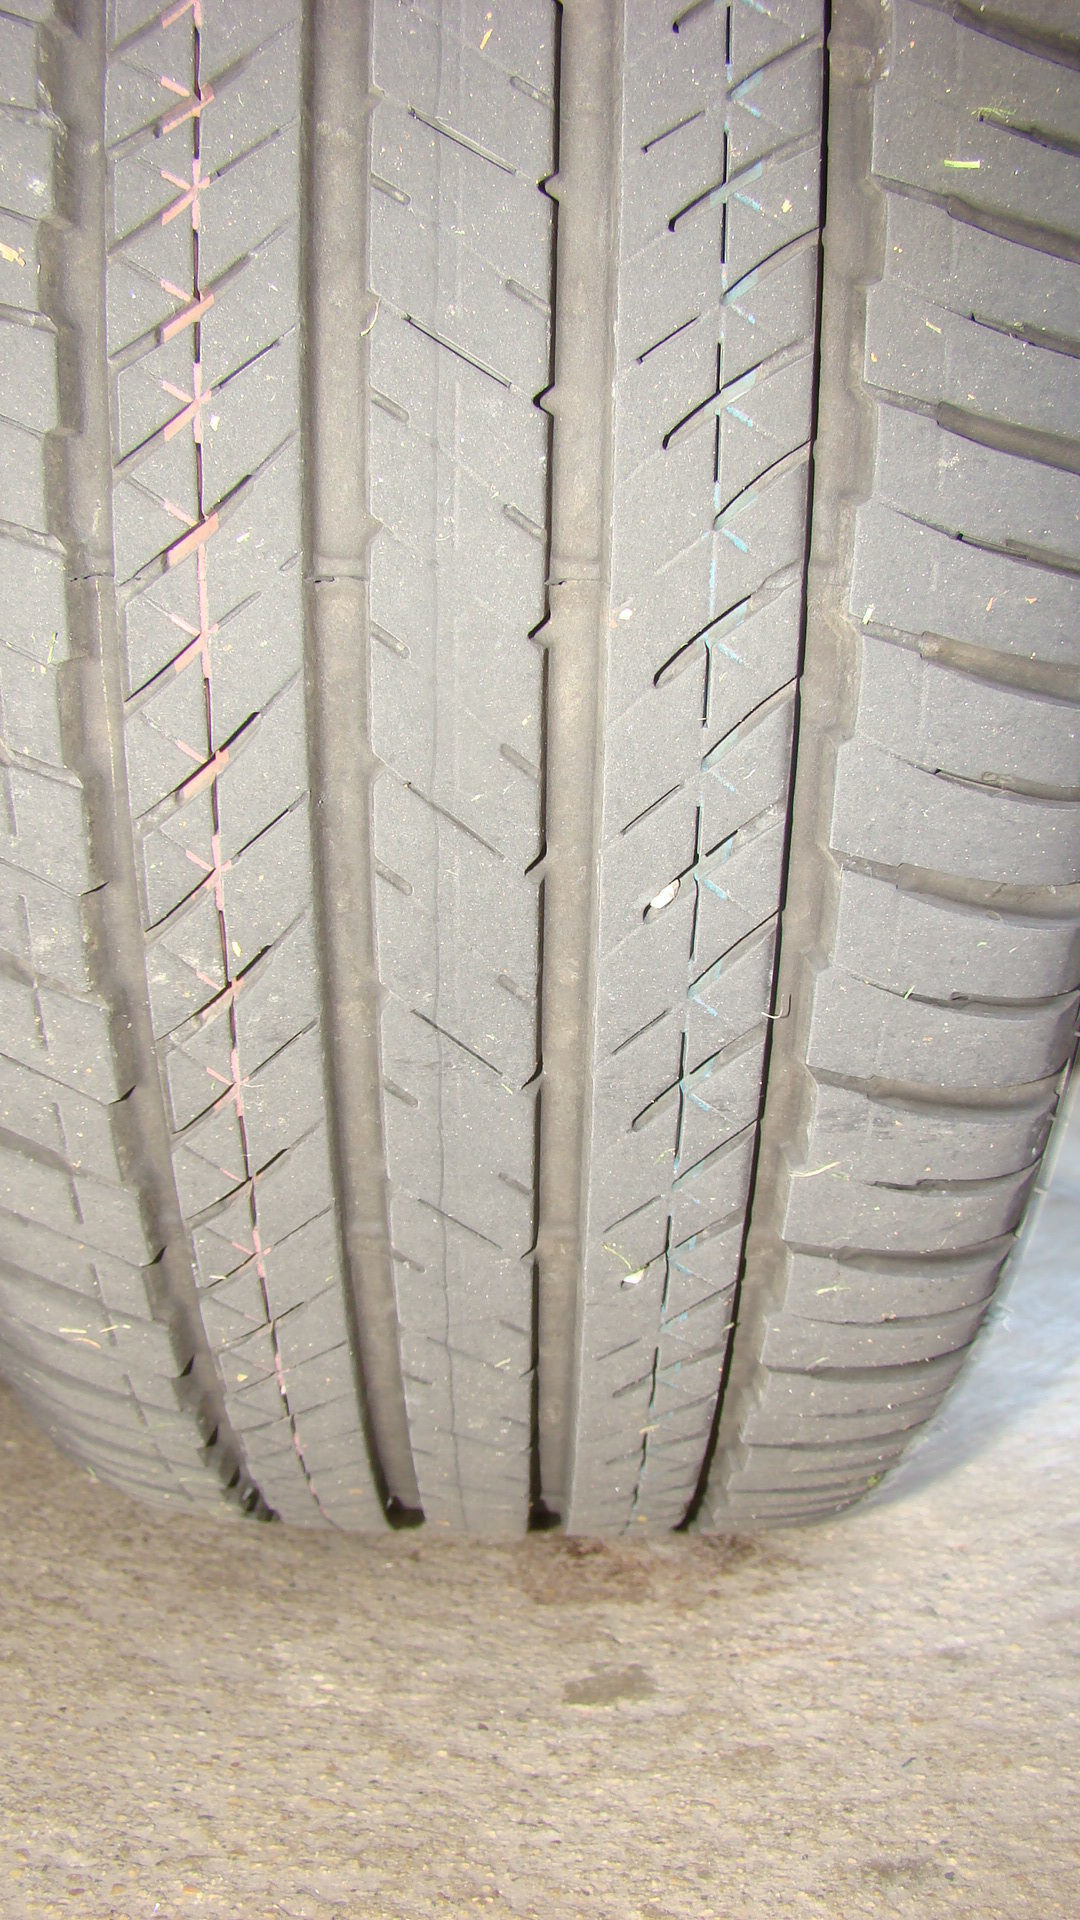 Top 133 Complaints and Reviews about Bridgestone Tires